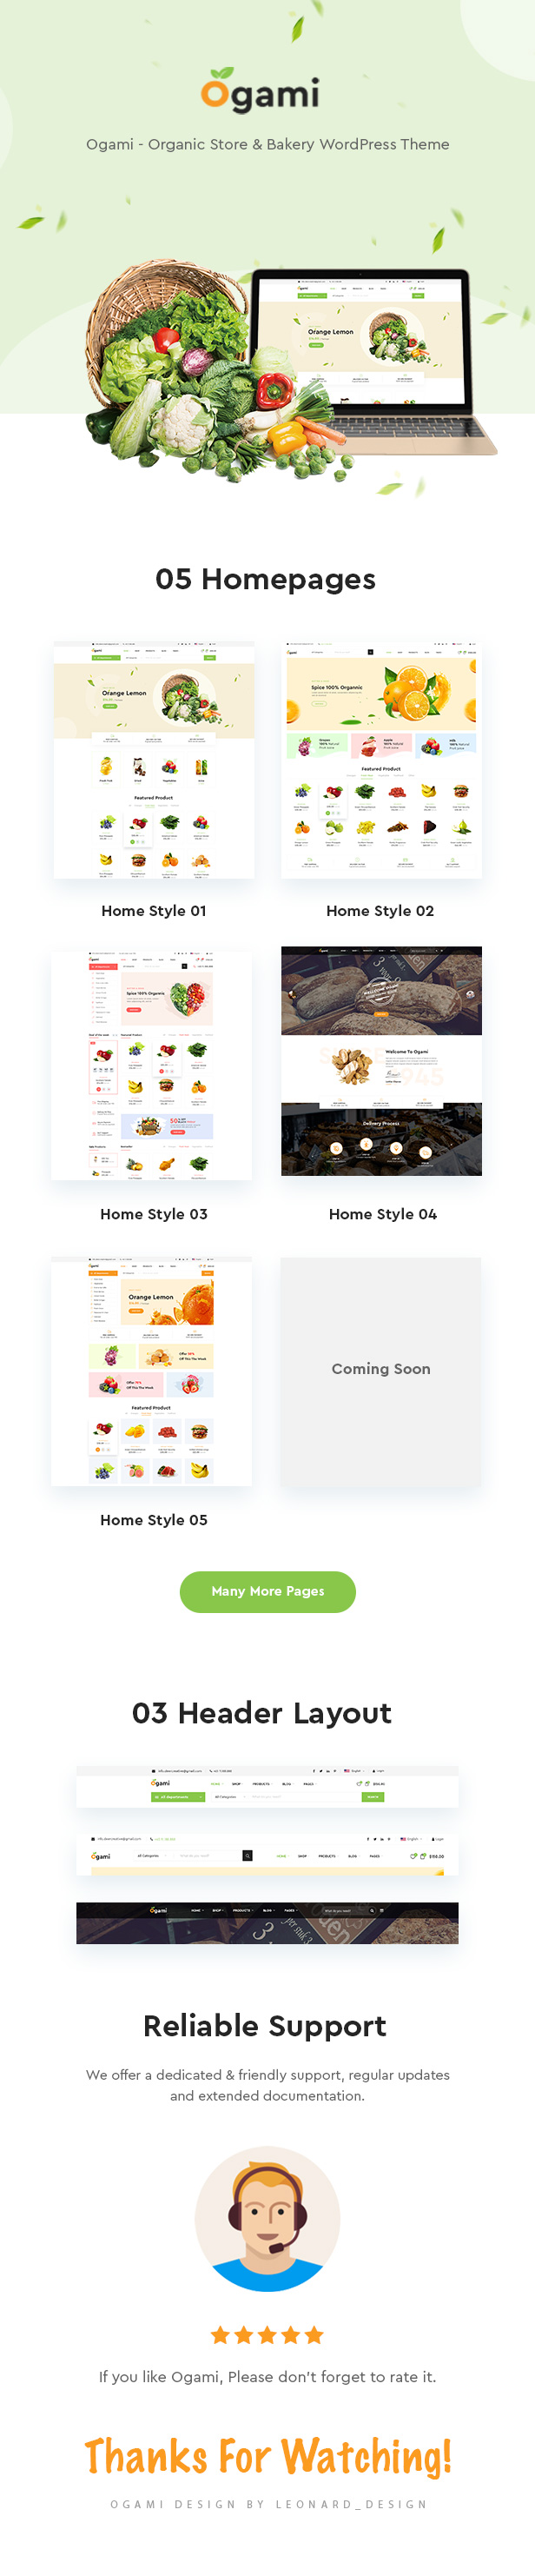 Ogami - Organic Store WordPress Theme - 4